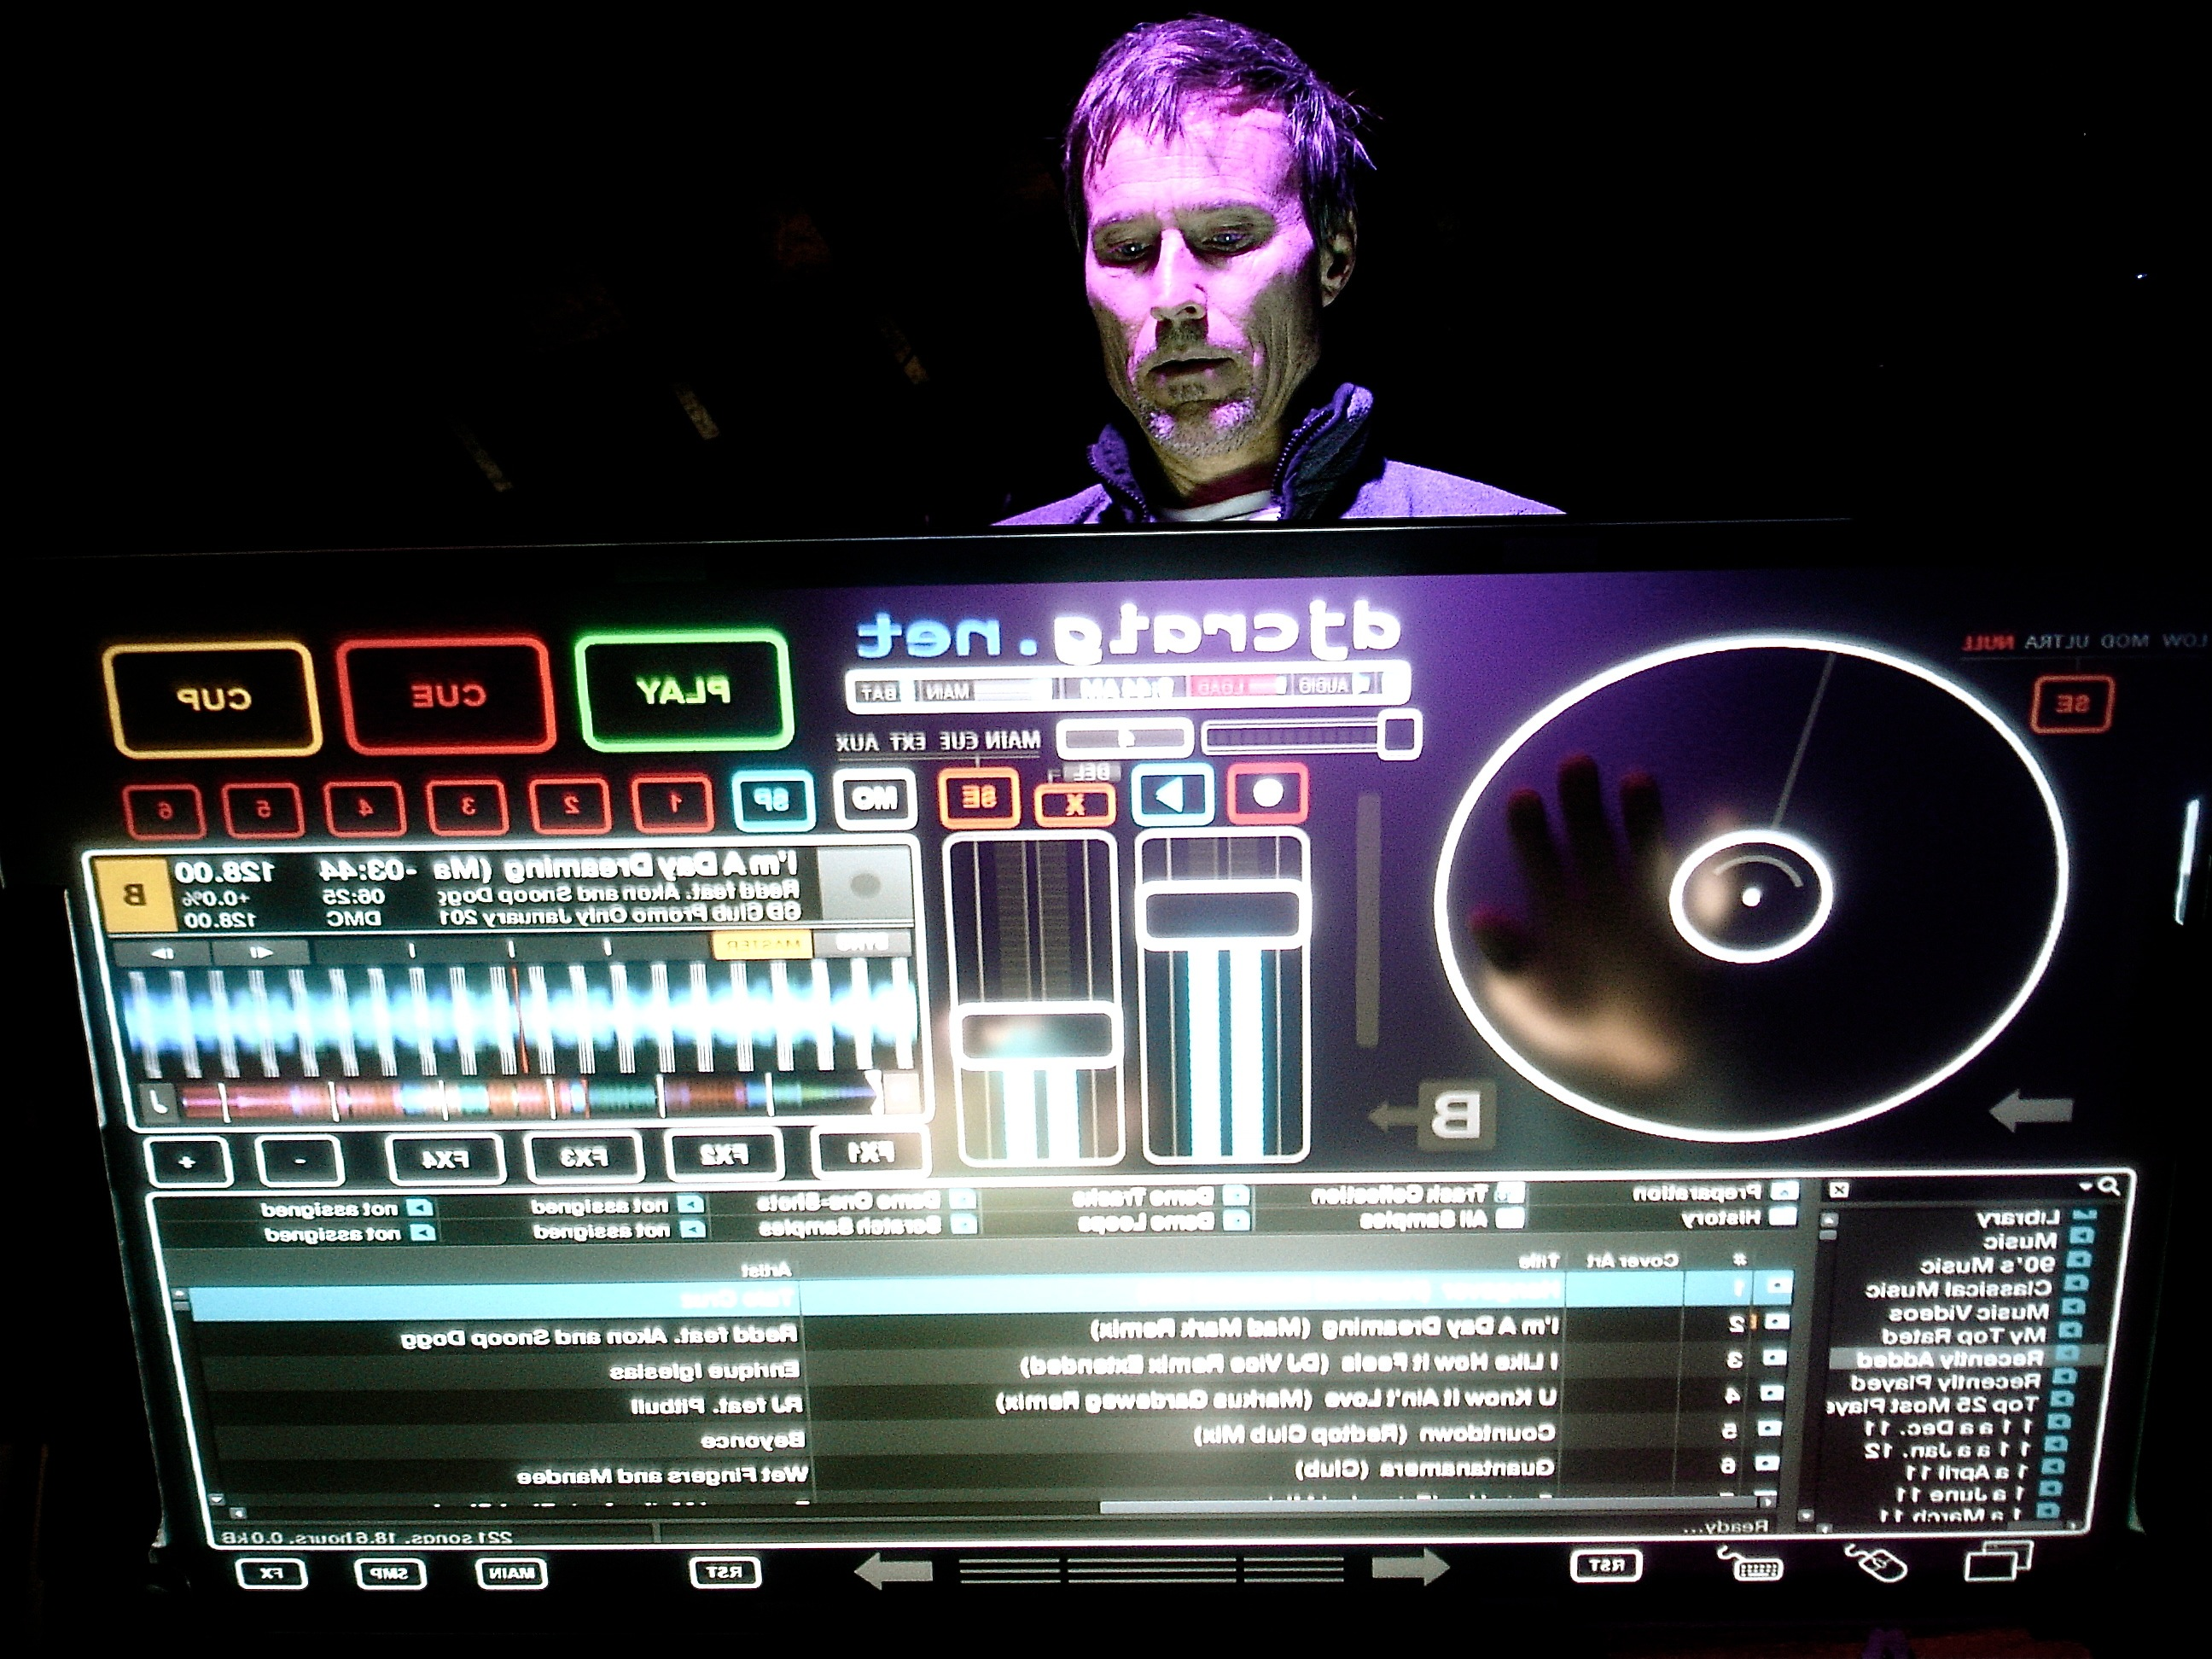 DJ touch screen